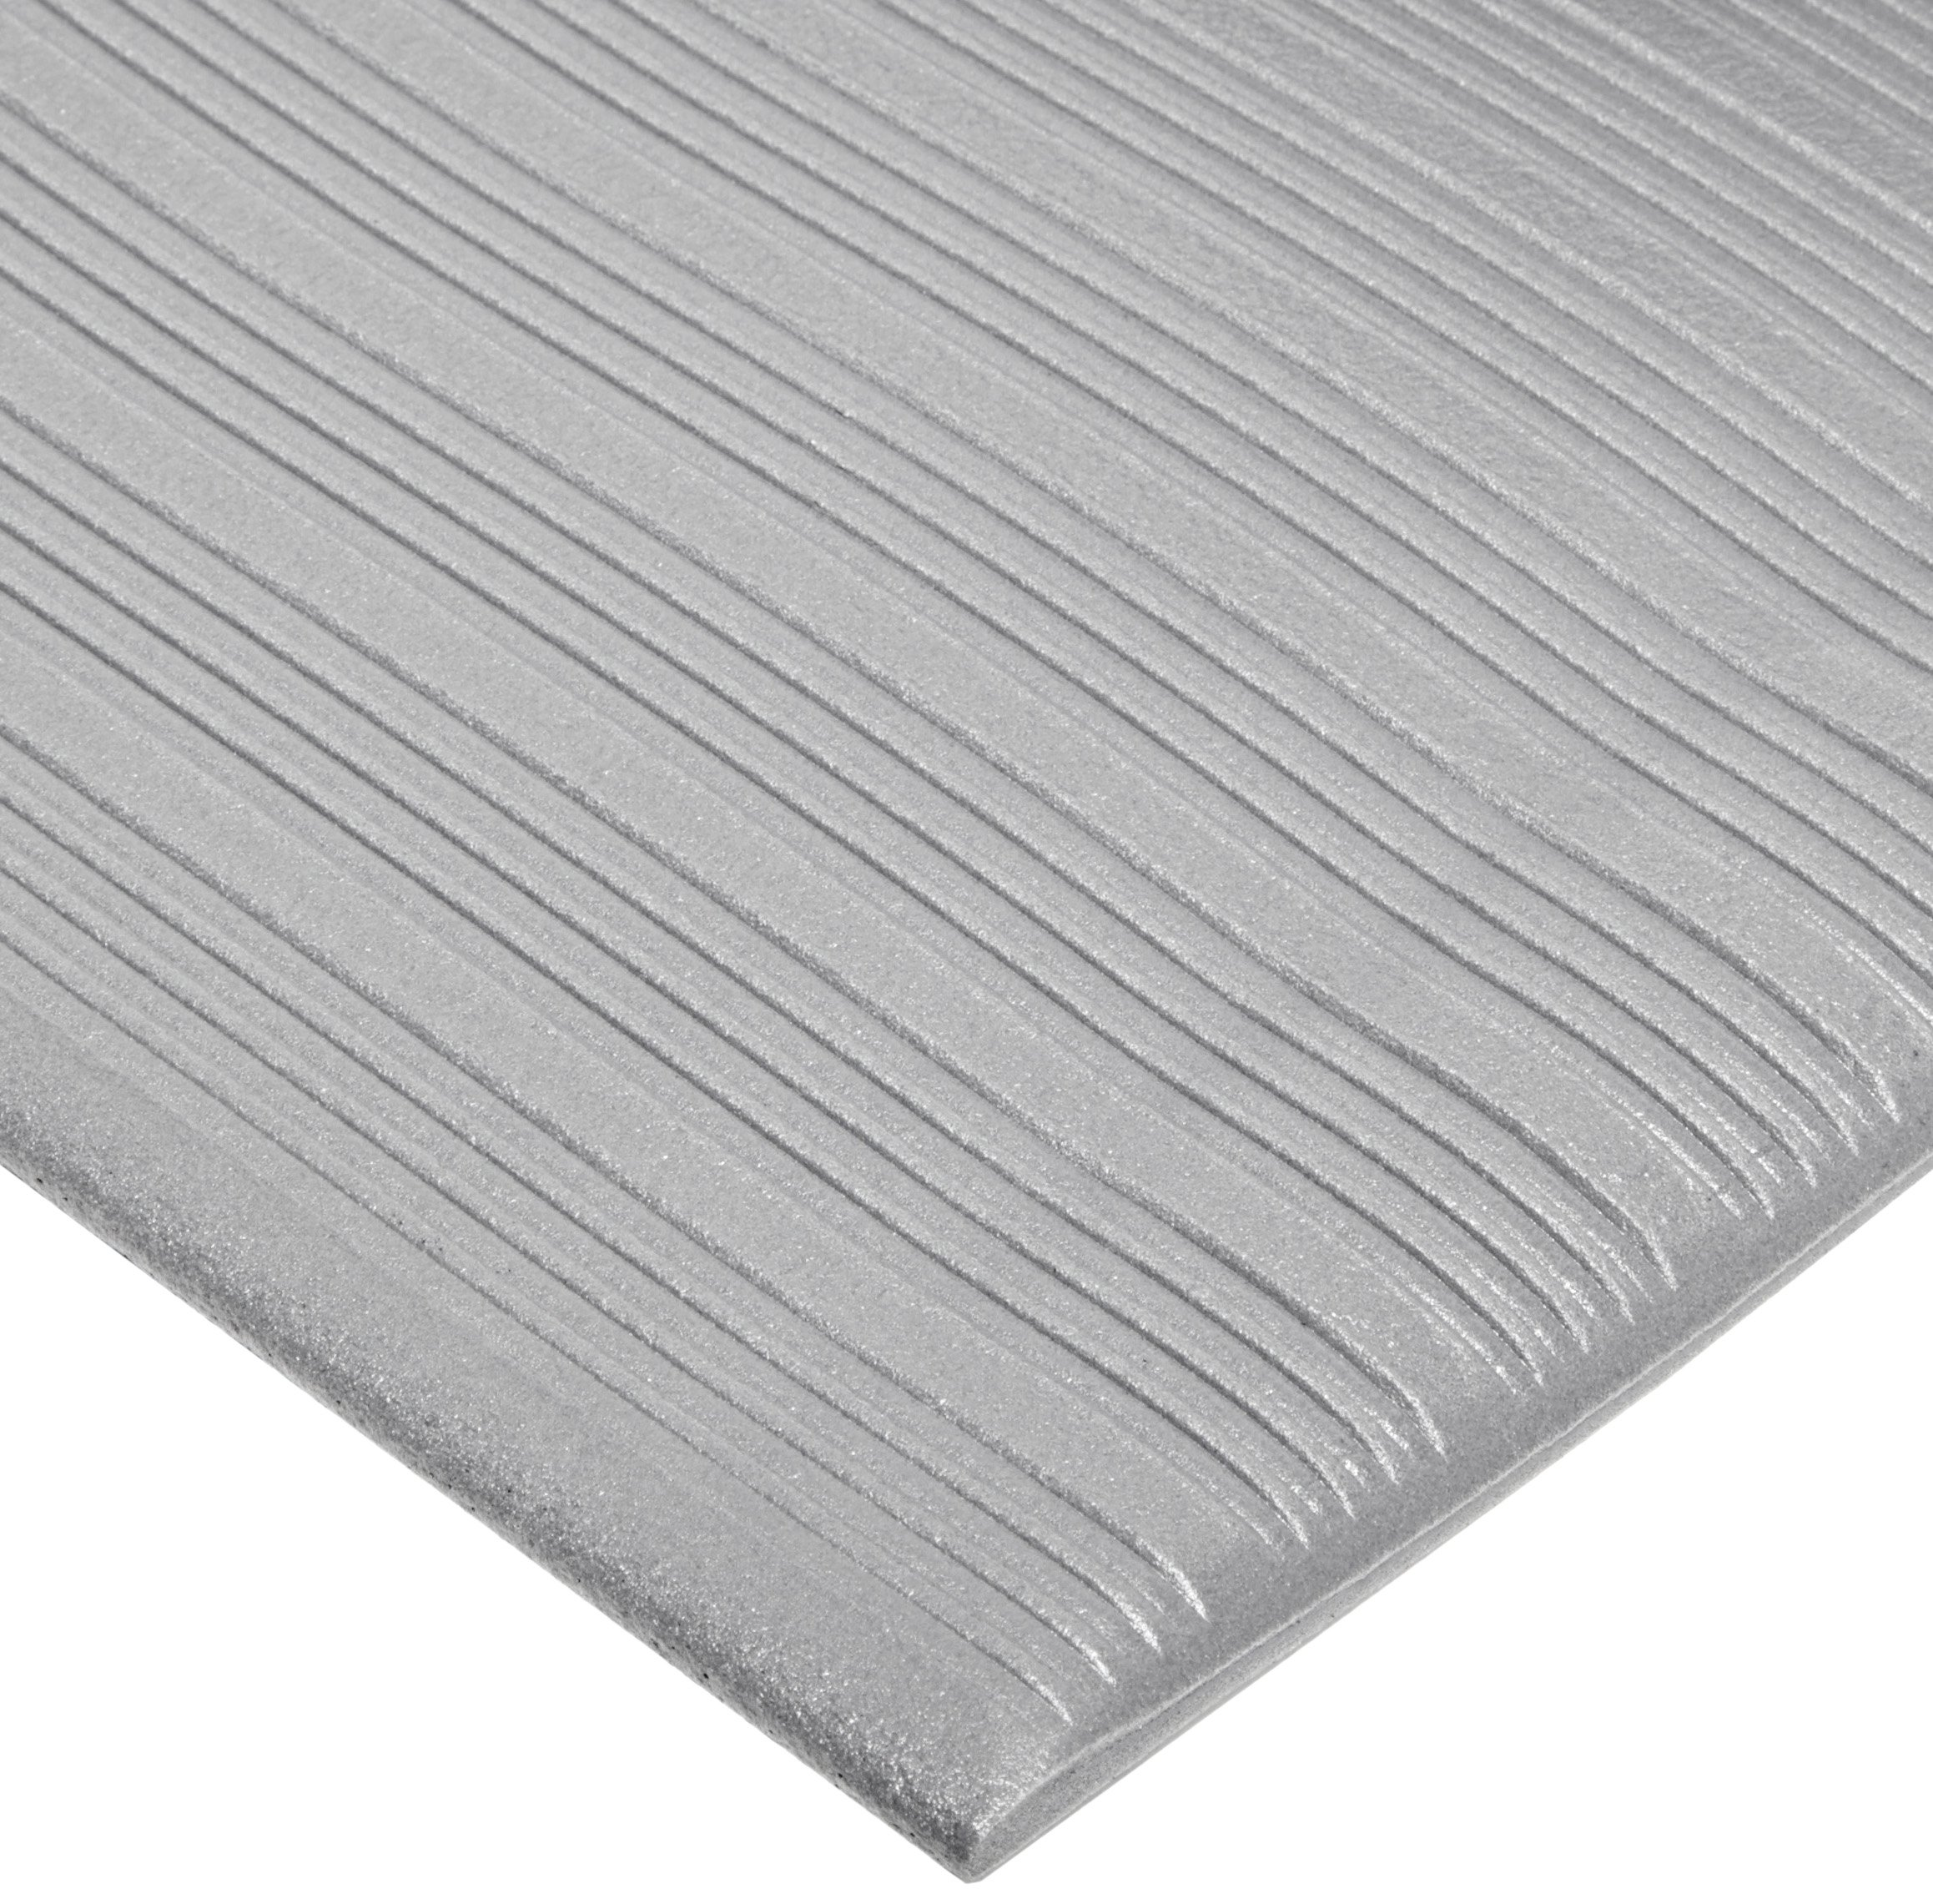 NoTrax 410 PVC Airug Safety/Anti-Fatigue Floor Mat, for Dry Areas, 3' Width x 12' Length x 3/8'' Thickness, Gray